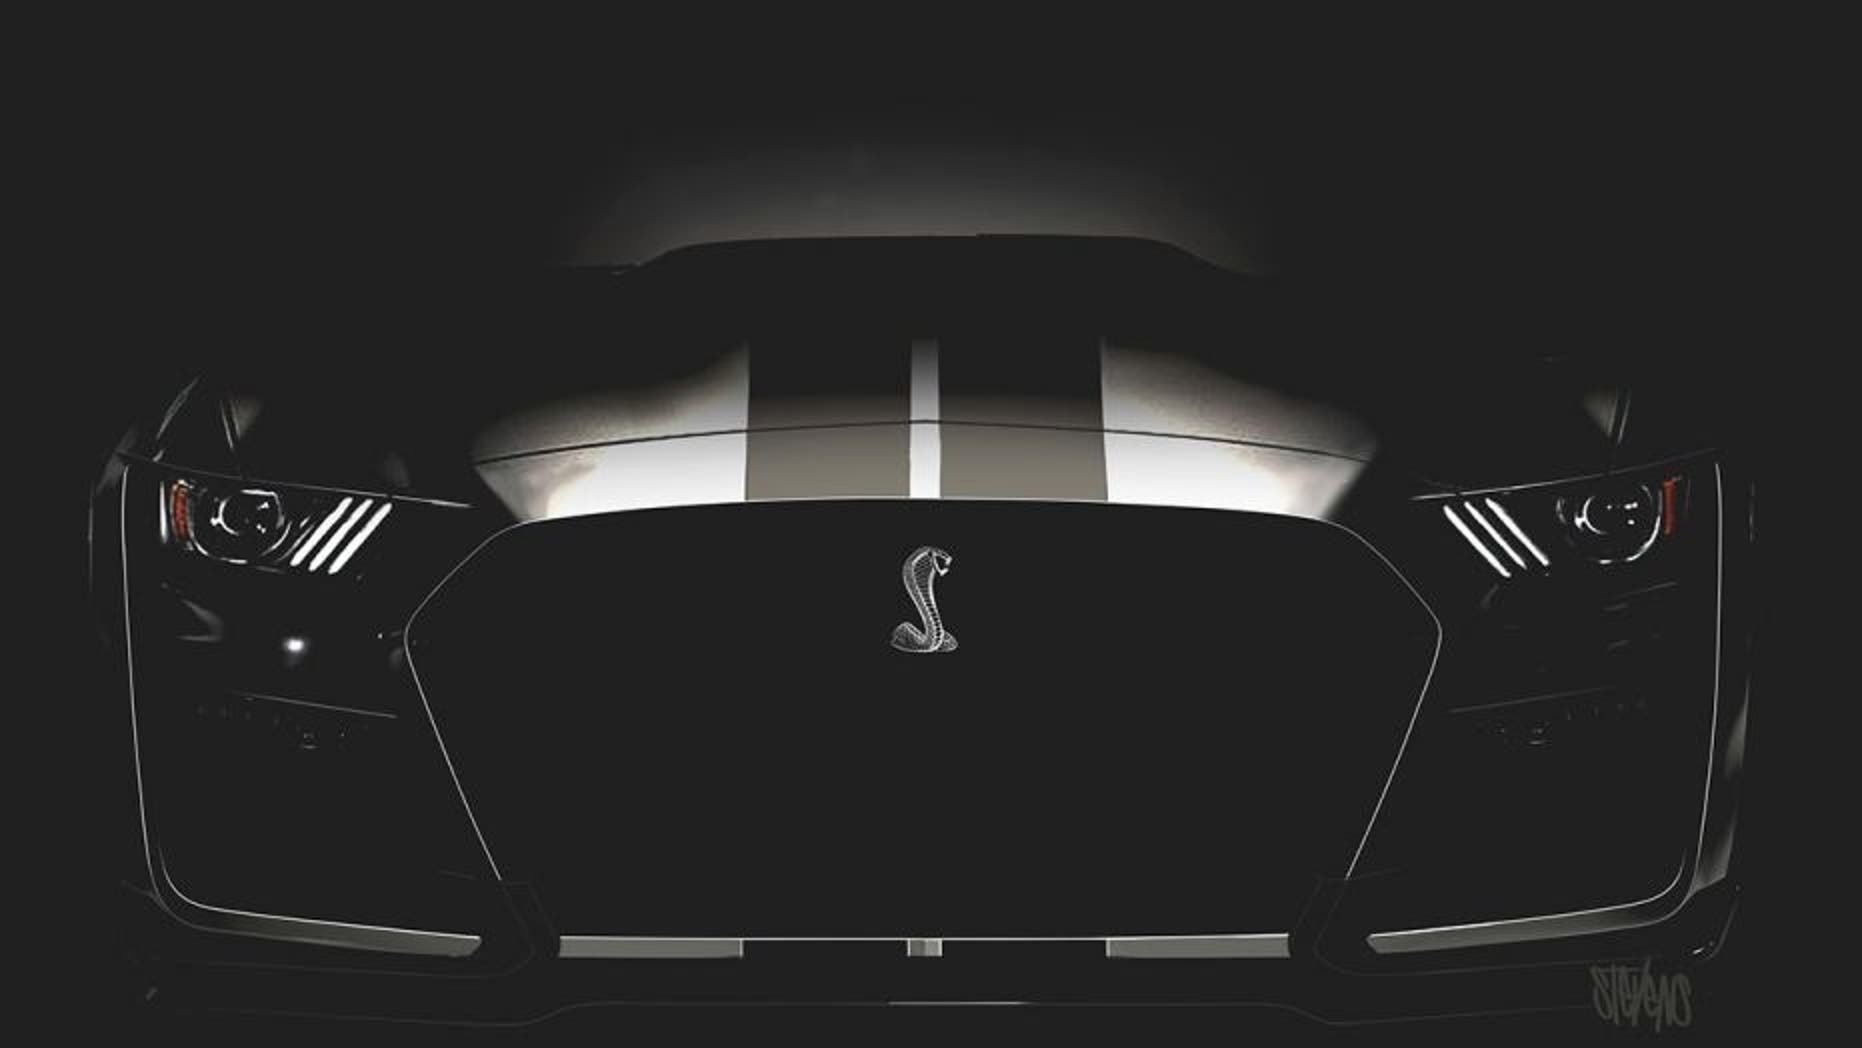 The 2019 Mustang Shelby GT500 will be the most-powerful version of the current generation car.